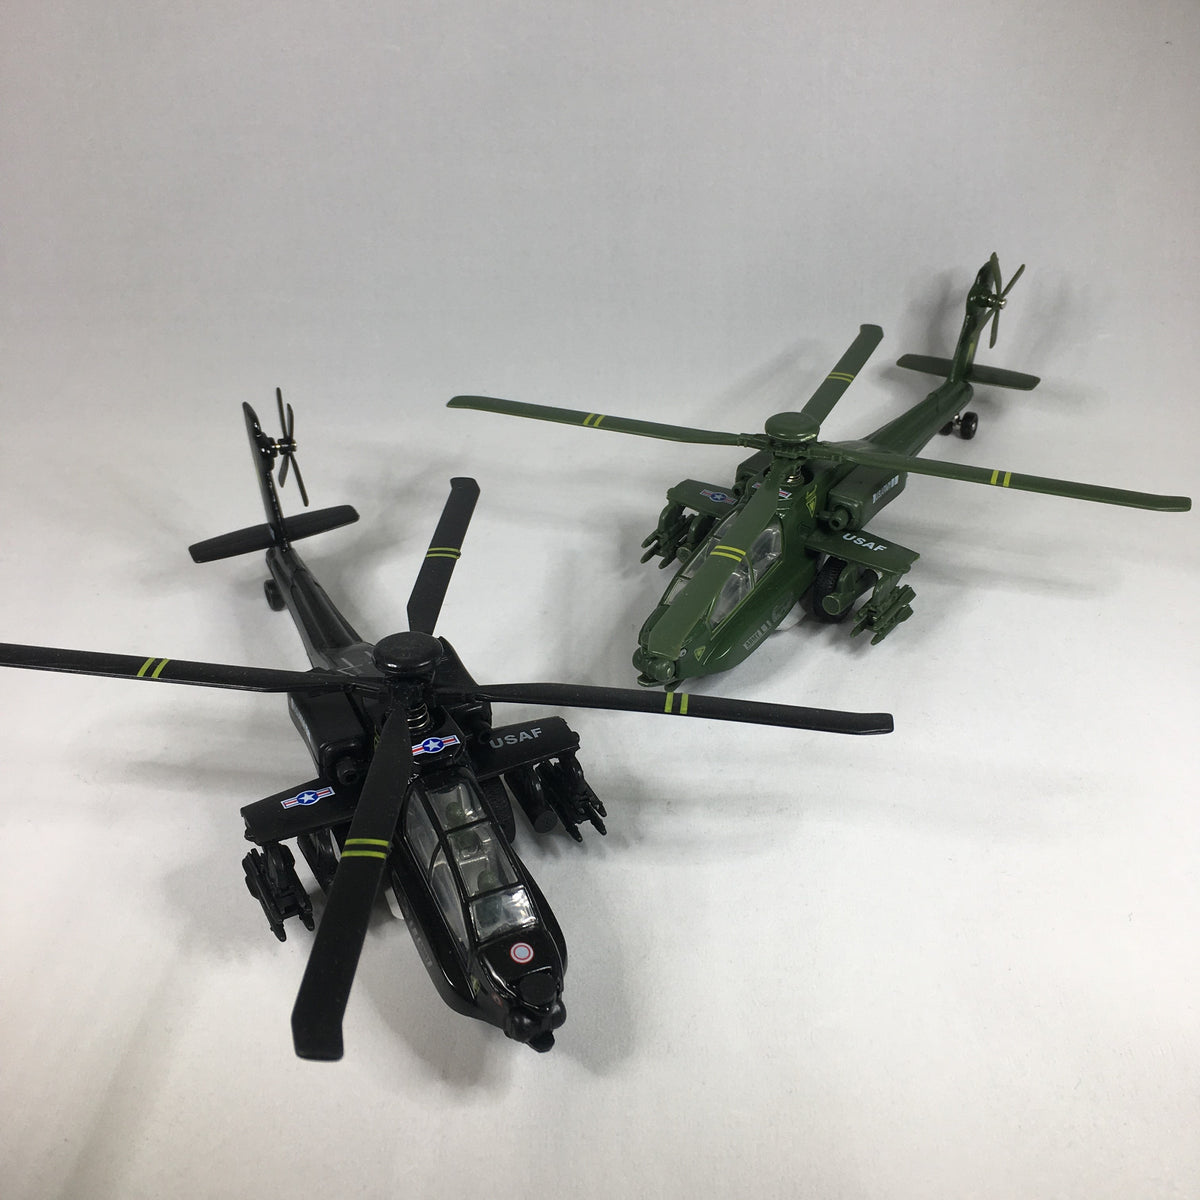 Apache Toy Helicopters